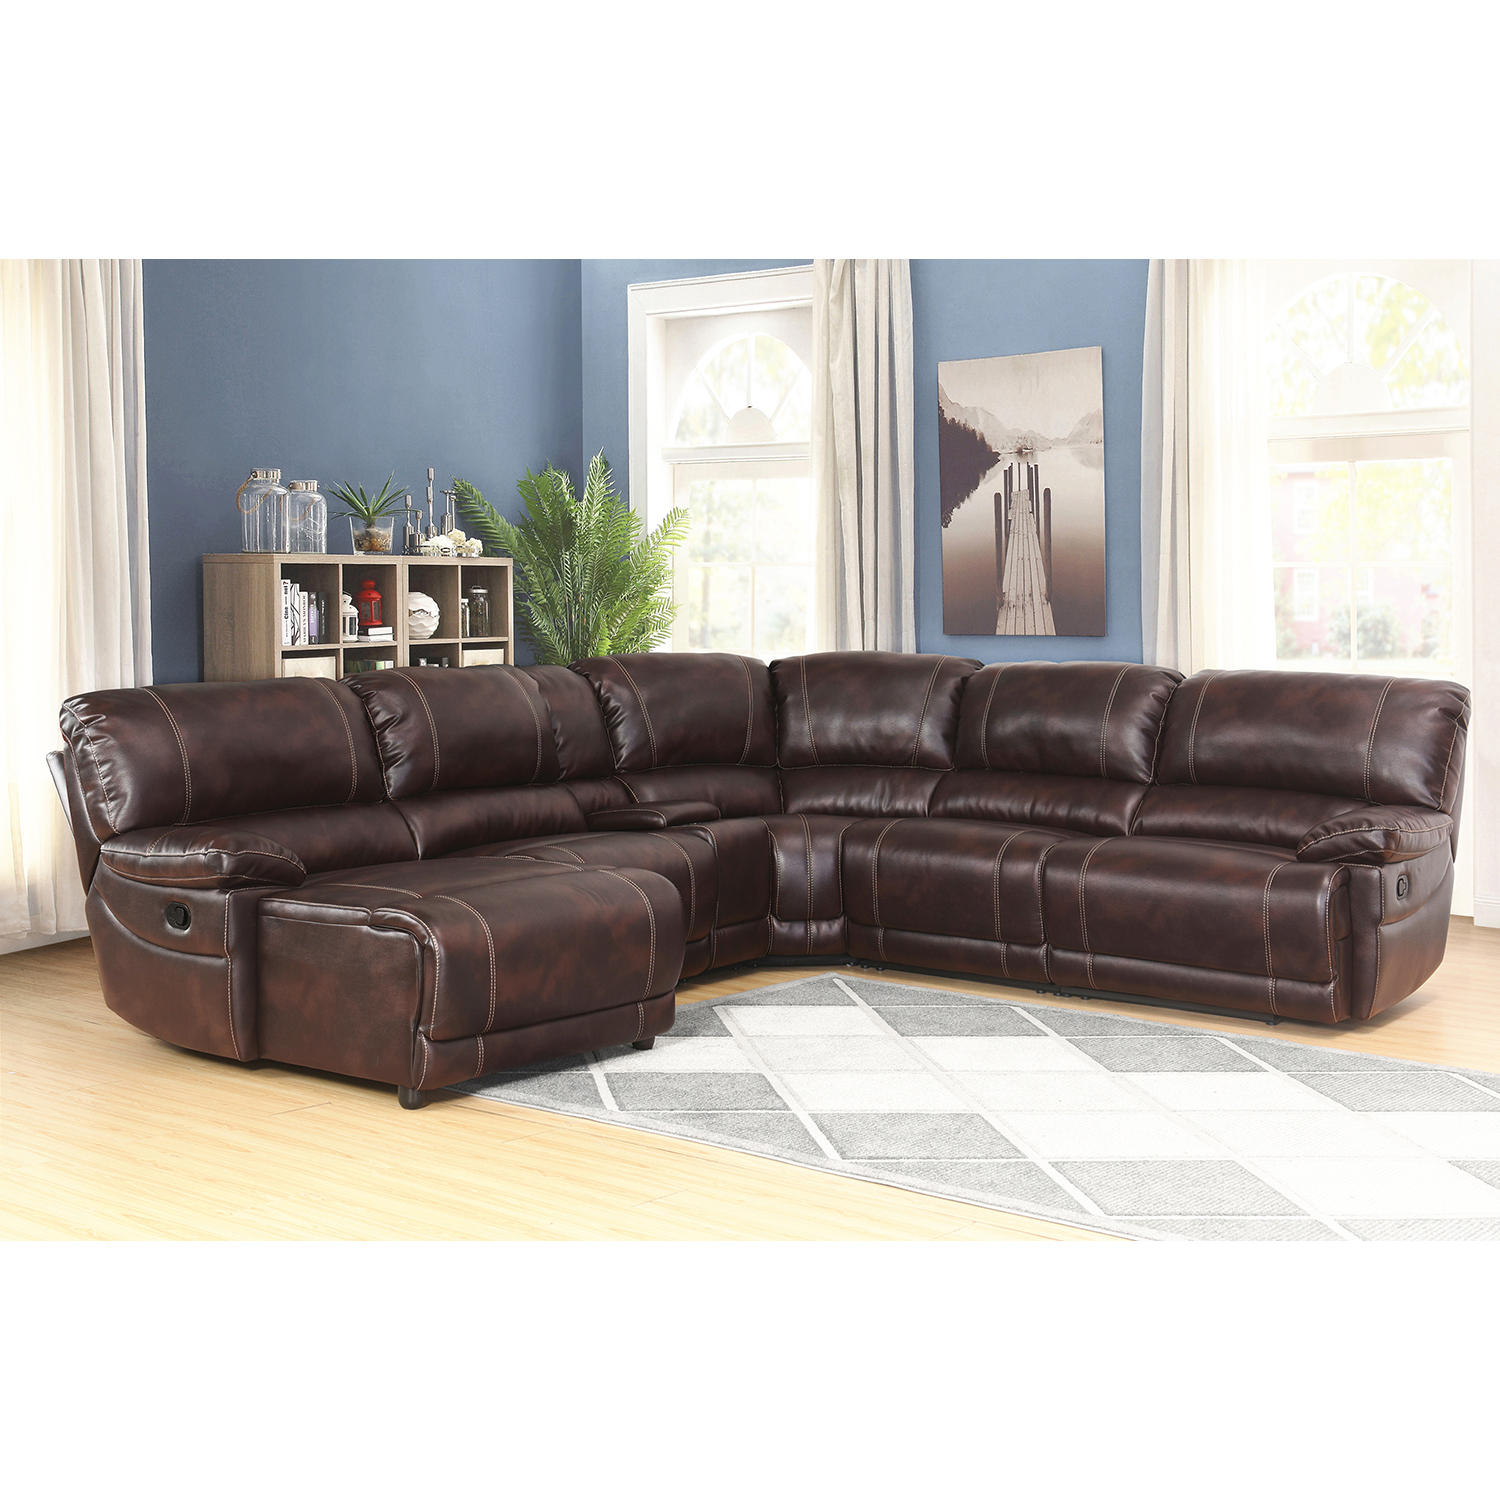 6-Piece Abbyson Living Carrington Sectional Sofa